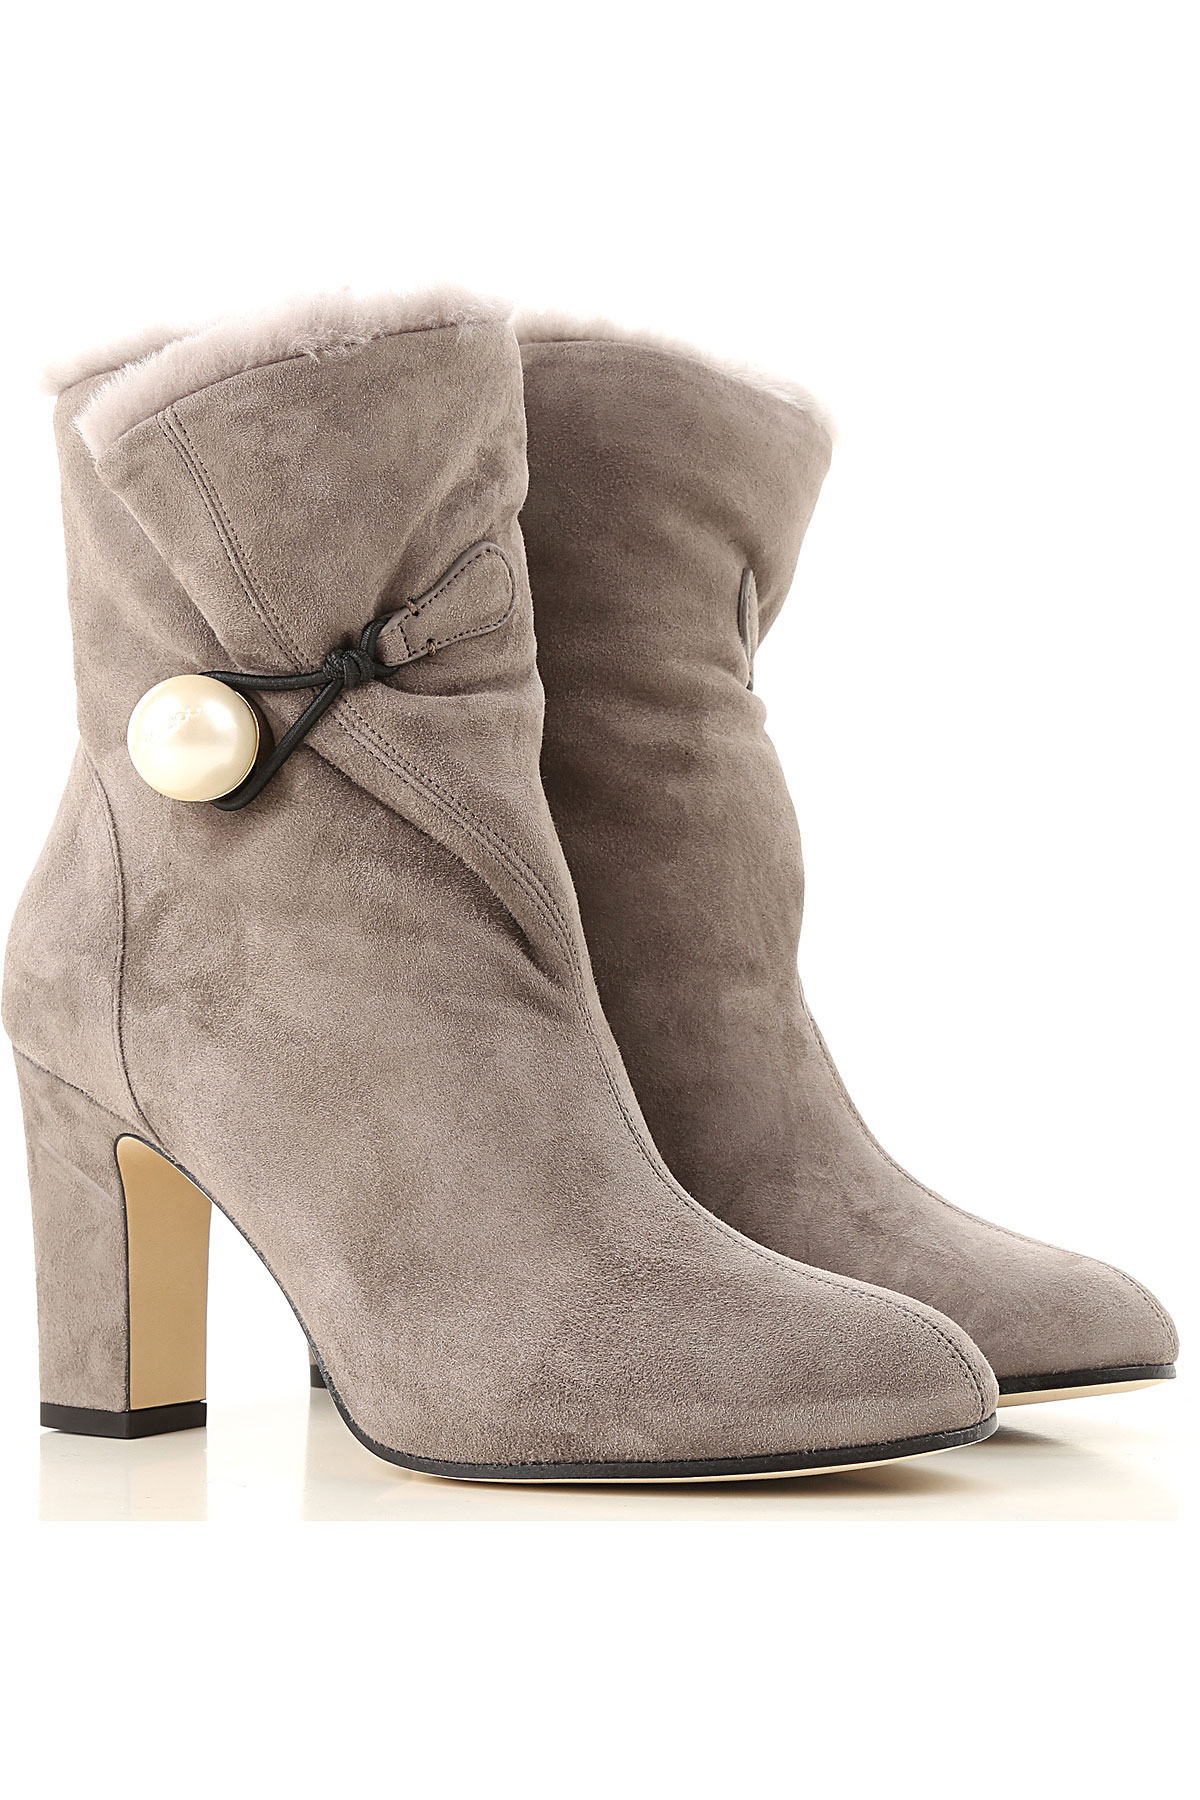 Jimmy Choo Boots for Women, Booties On Sale in Outlet, Mouse Grey, suede, 2019, 10 7